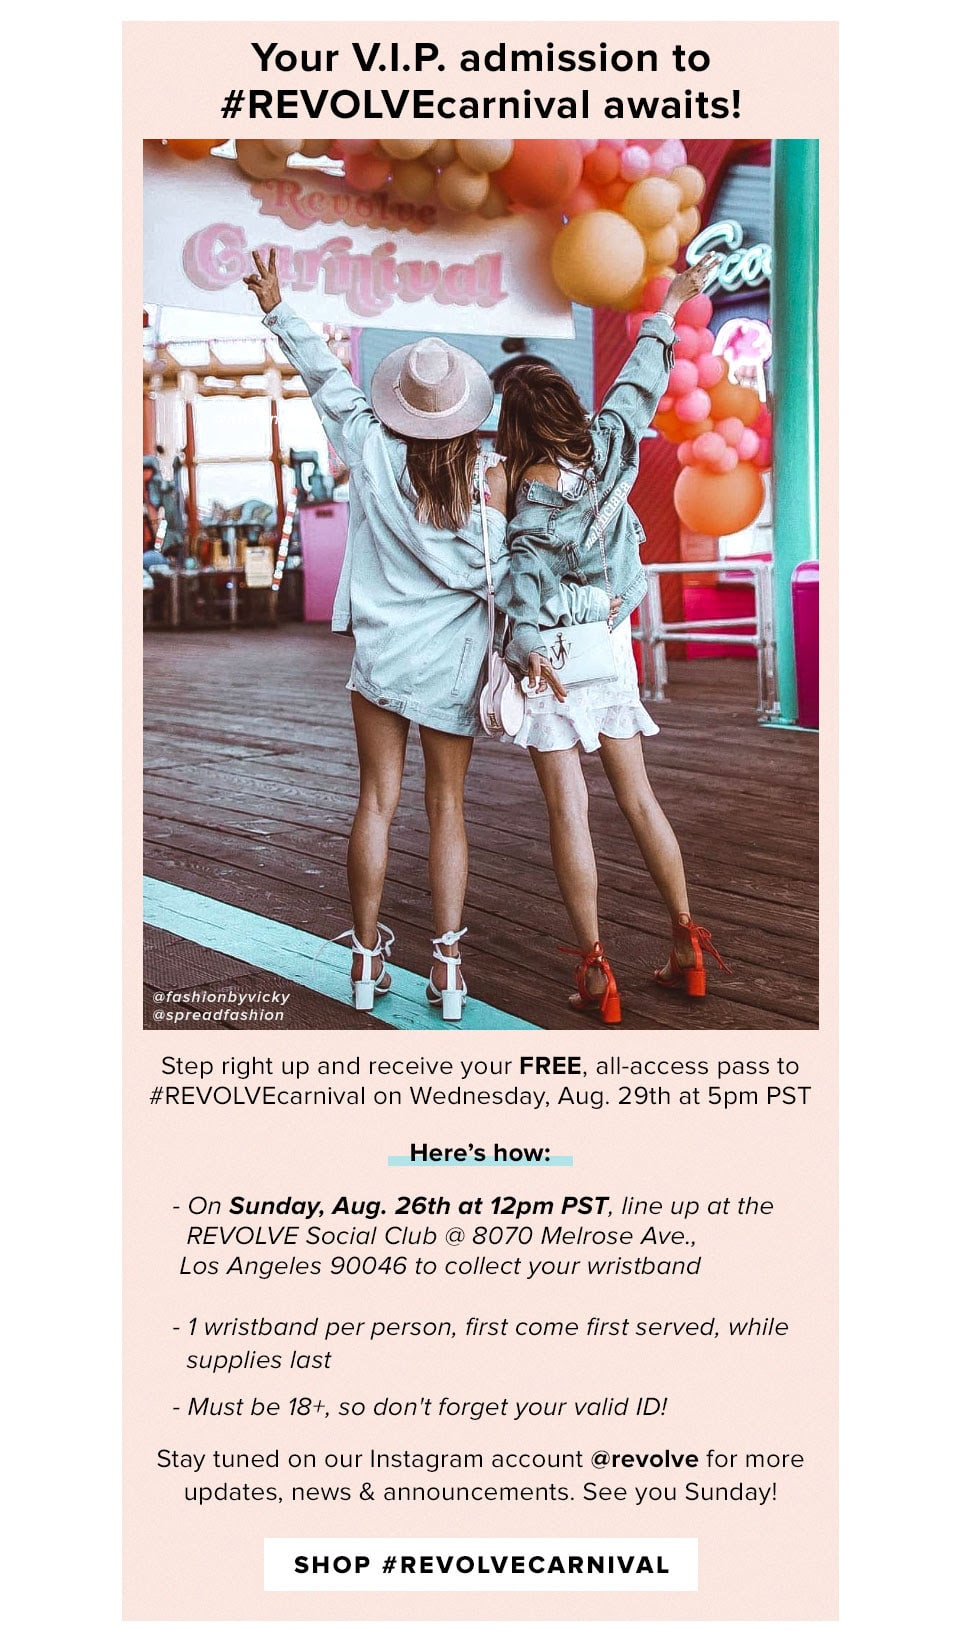 Your V.I.P. admission to #REVOLVEcarnival awaits! Step right up and receive your FREE, all-access pass to #REVOLVEcarnival on Wednesday, Aug. 29th at 5pm PST. Here's how: On Sunday, Aug. 26th at 12pm PST, line up at the REVOLVE Social Club @ 8070 Melrose Ave. Los Angeles, 90046 to collect your wristband. 1 wristband per person, first come first served, while supplies last. Must be 18+, so don't forget your valid ID! Stay tuned on our Instagram account @revolve for more updates, news & announcements. See you Sunday! Shop #REVOLVEcarnival.